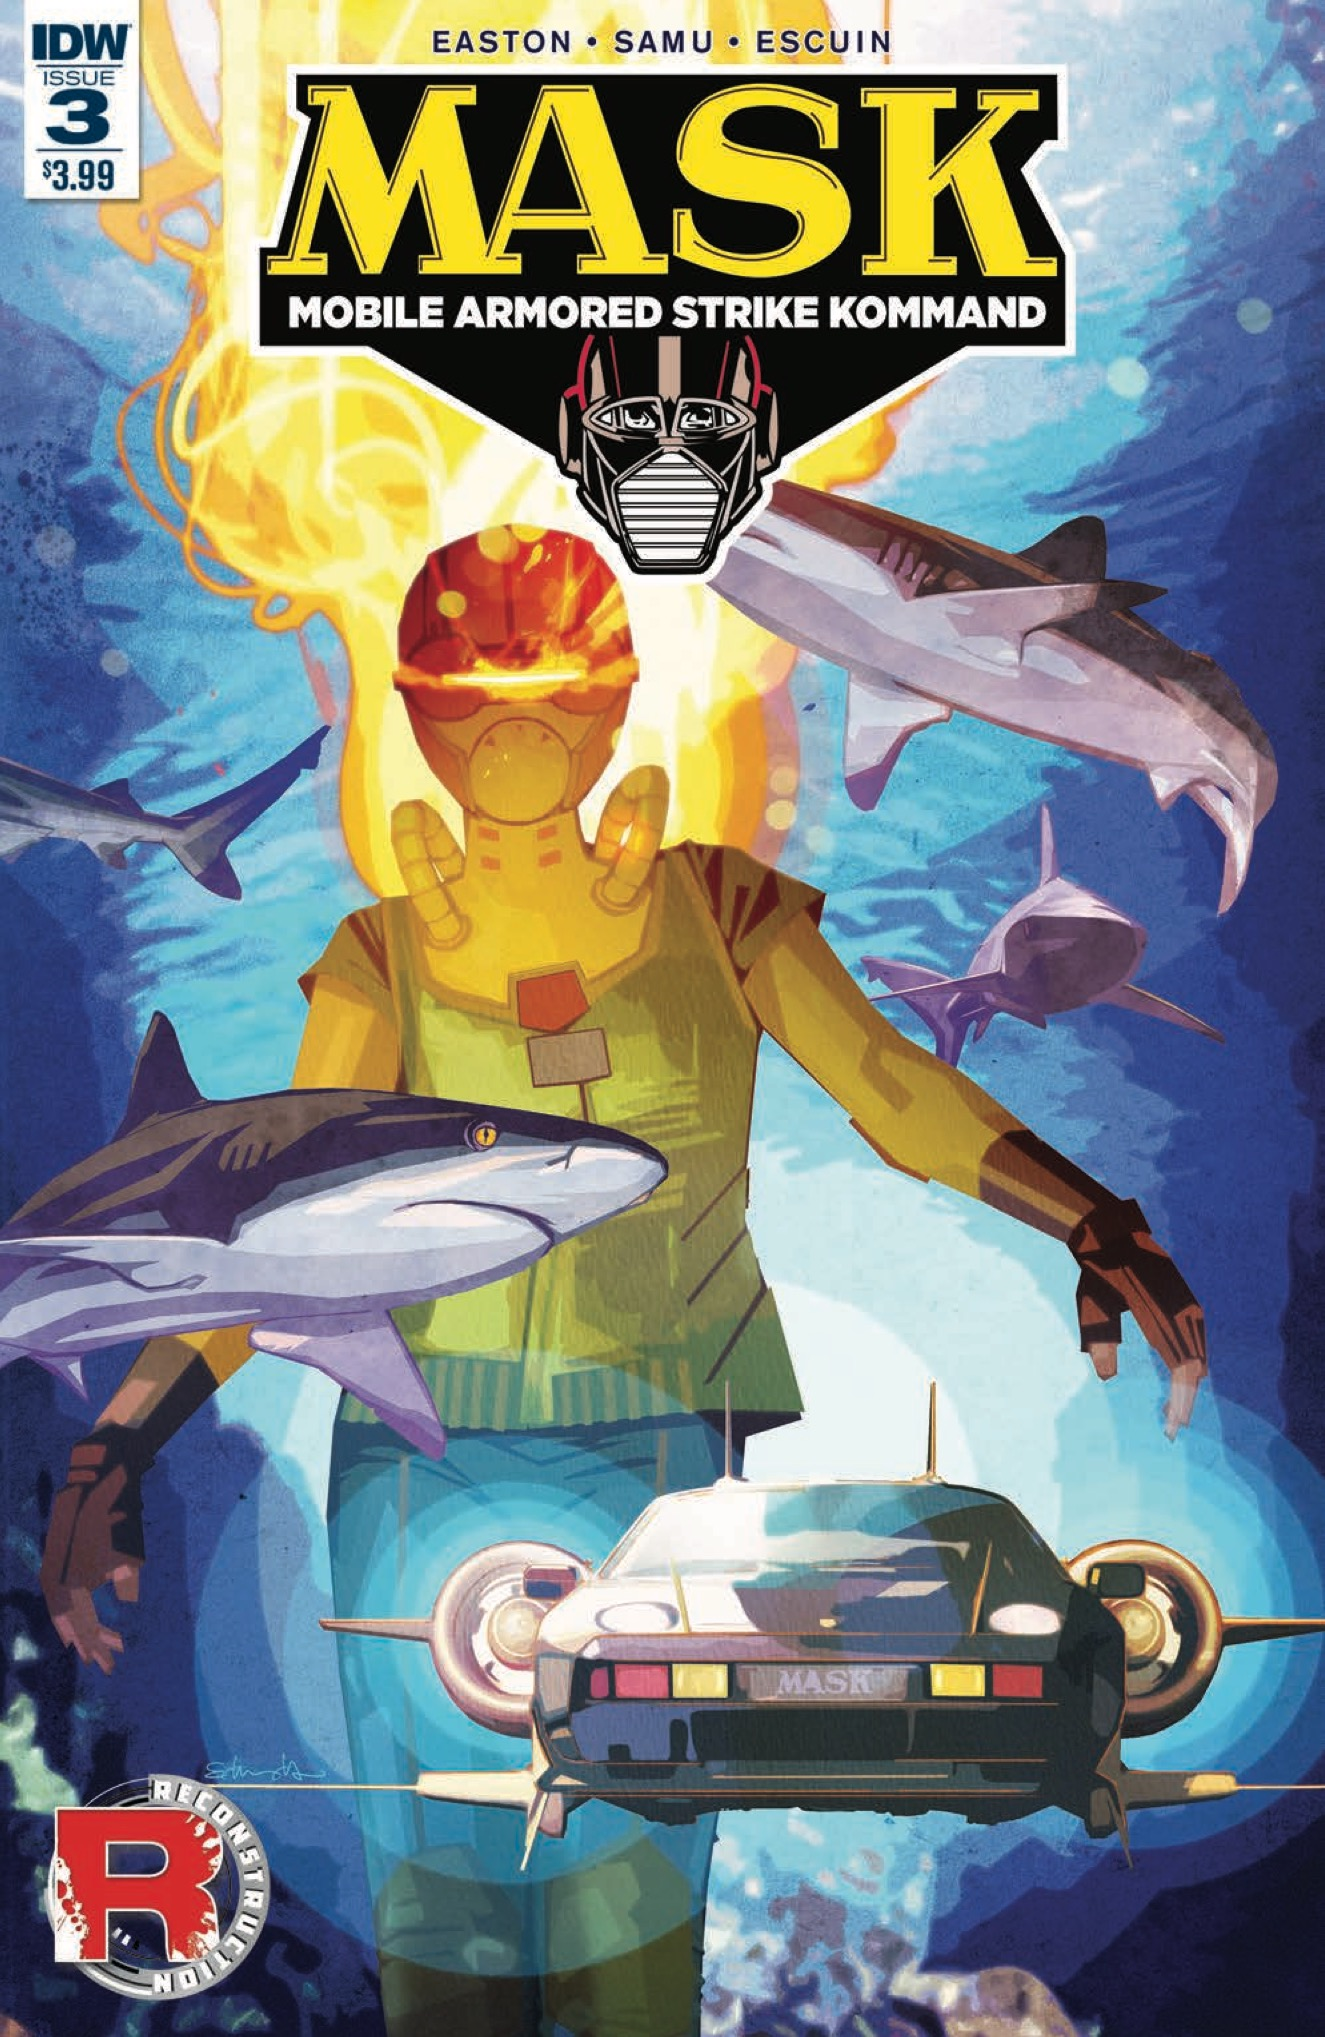 [EXCLUSIVE] IDW Preview: M.A.S.K.: Mobile Armored Strike Kommand #3